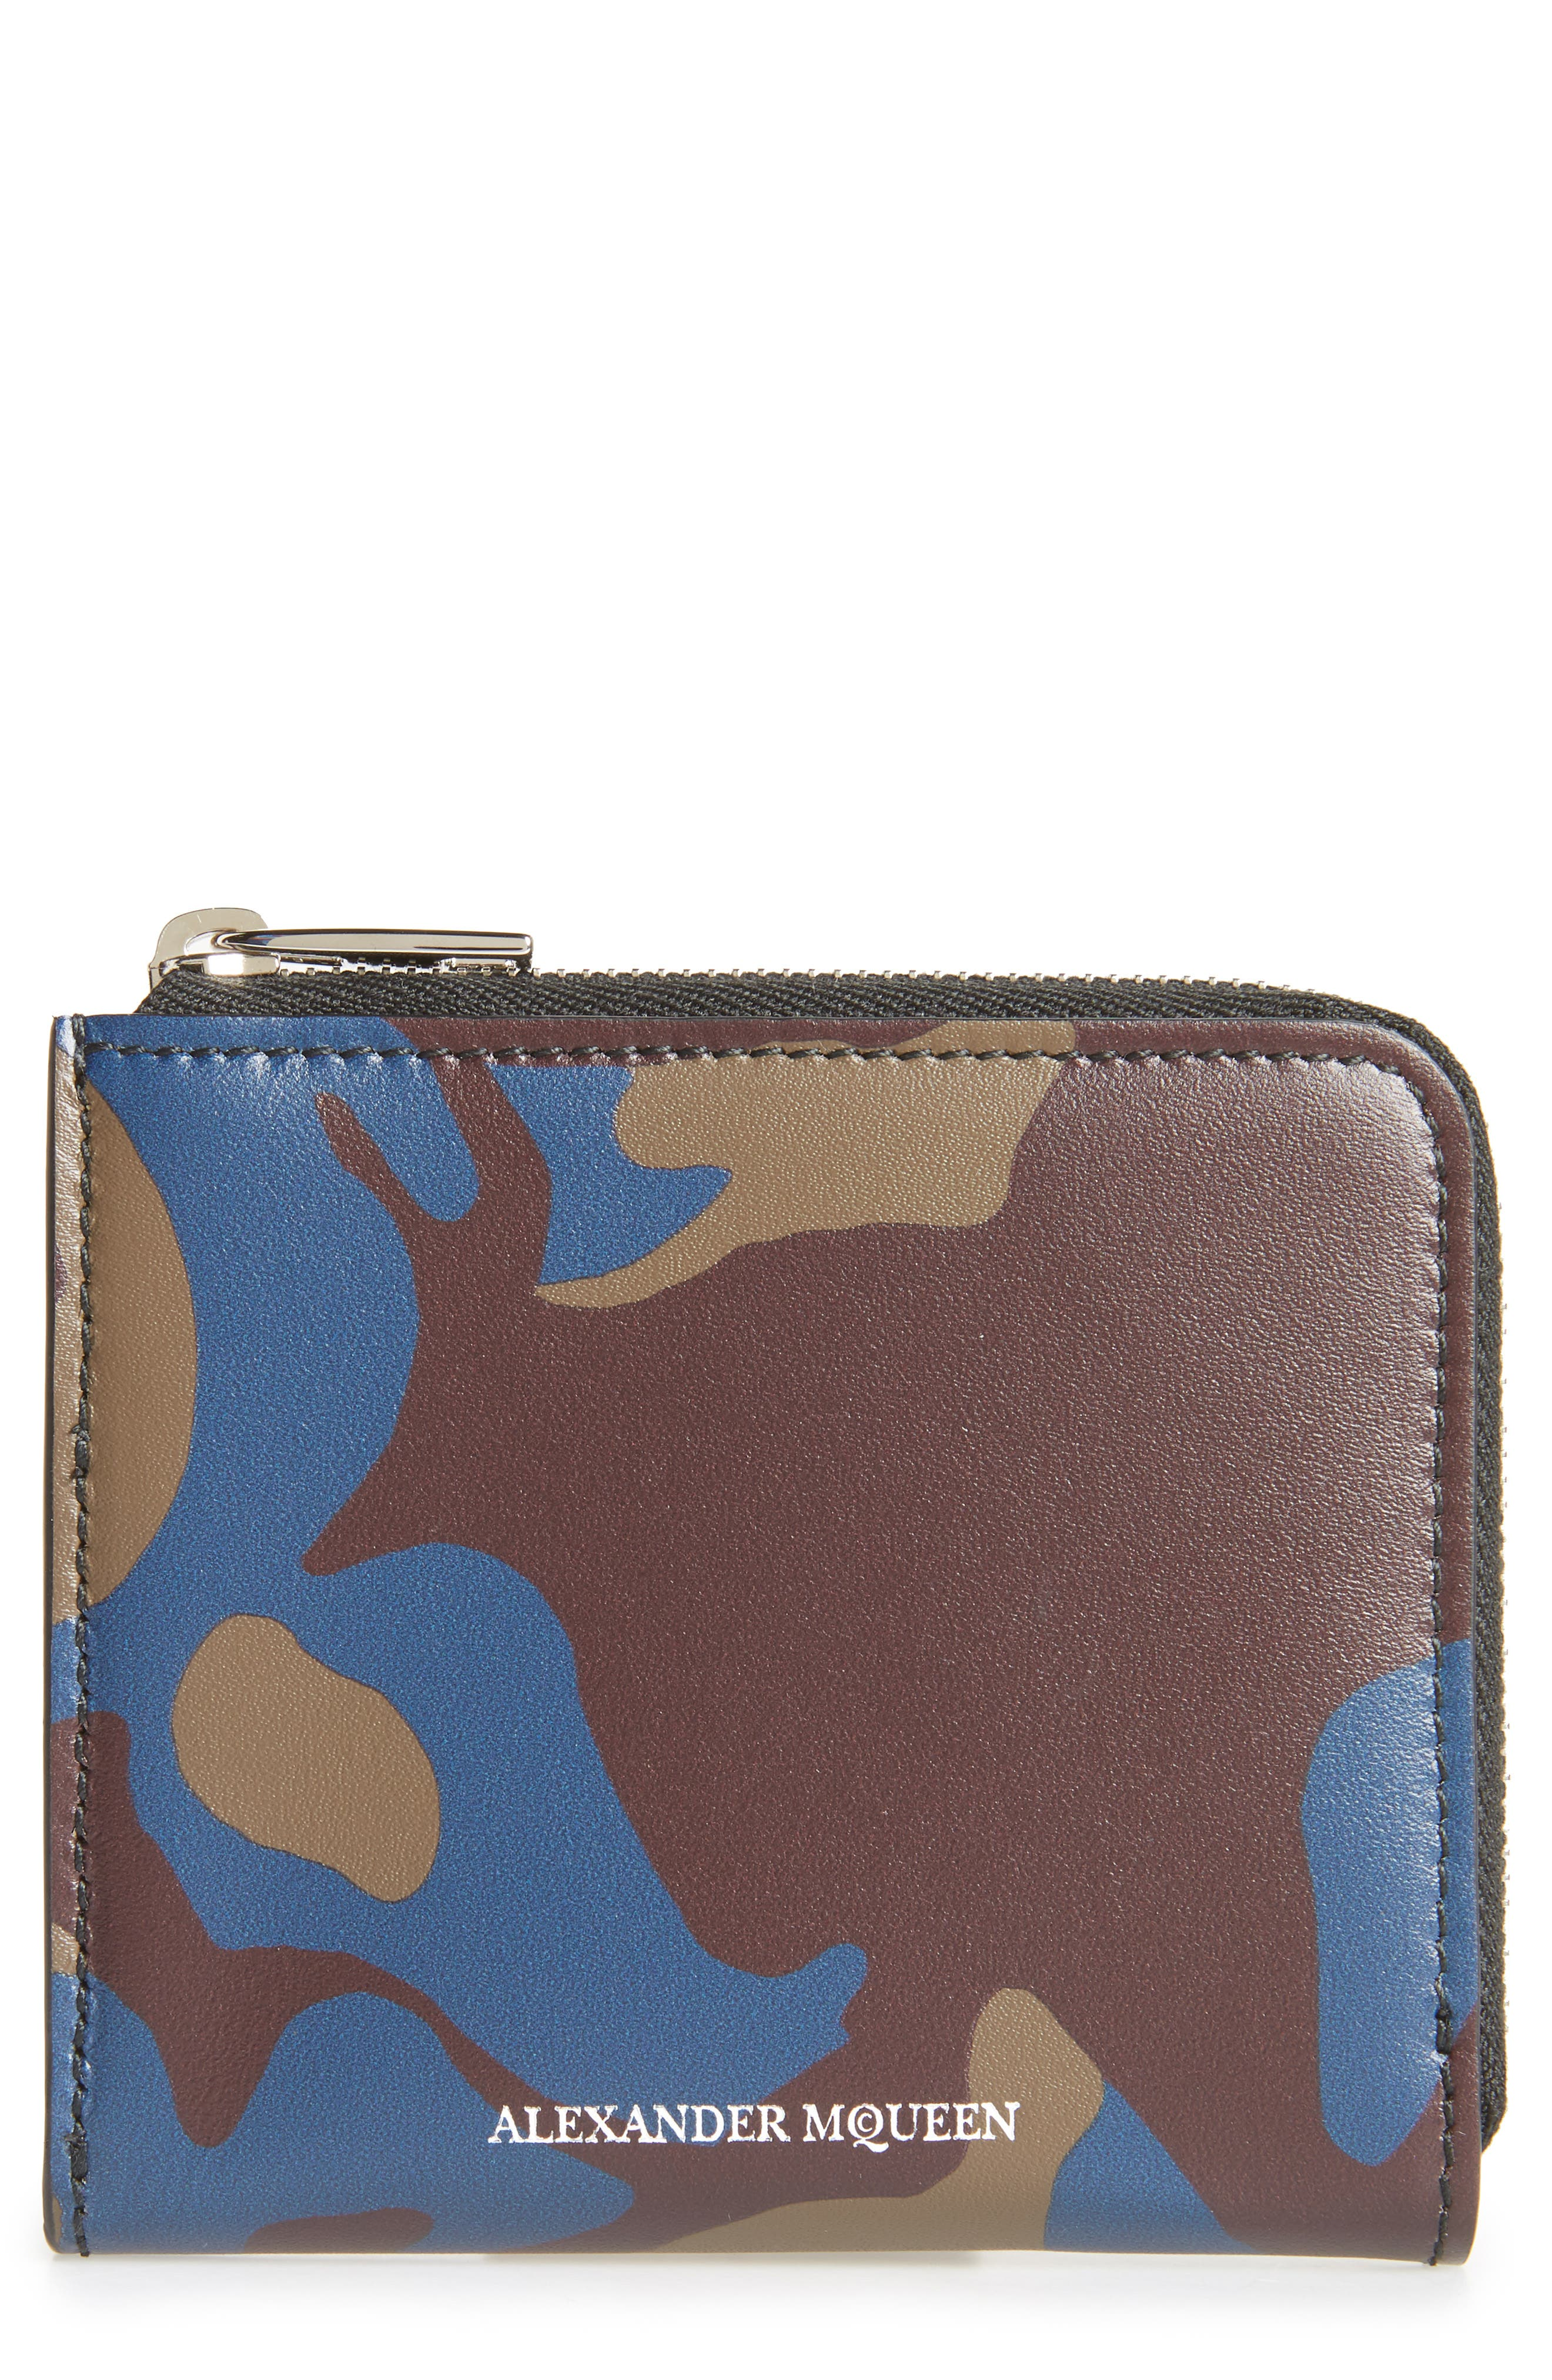 Leather Zip Coin Purse,                         Main,                         color, MILITARY